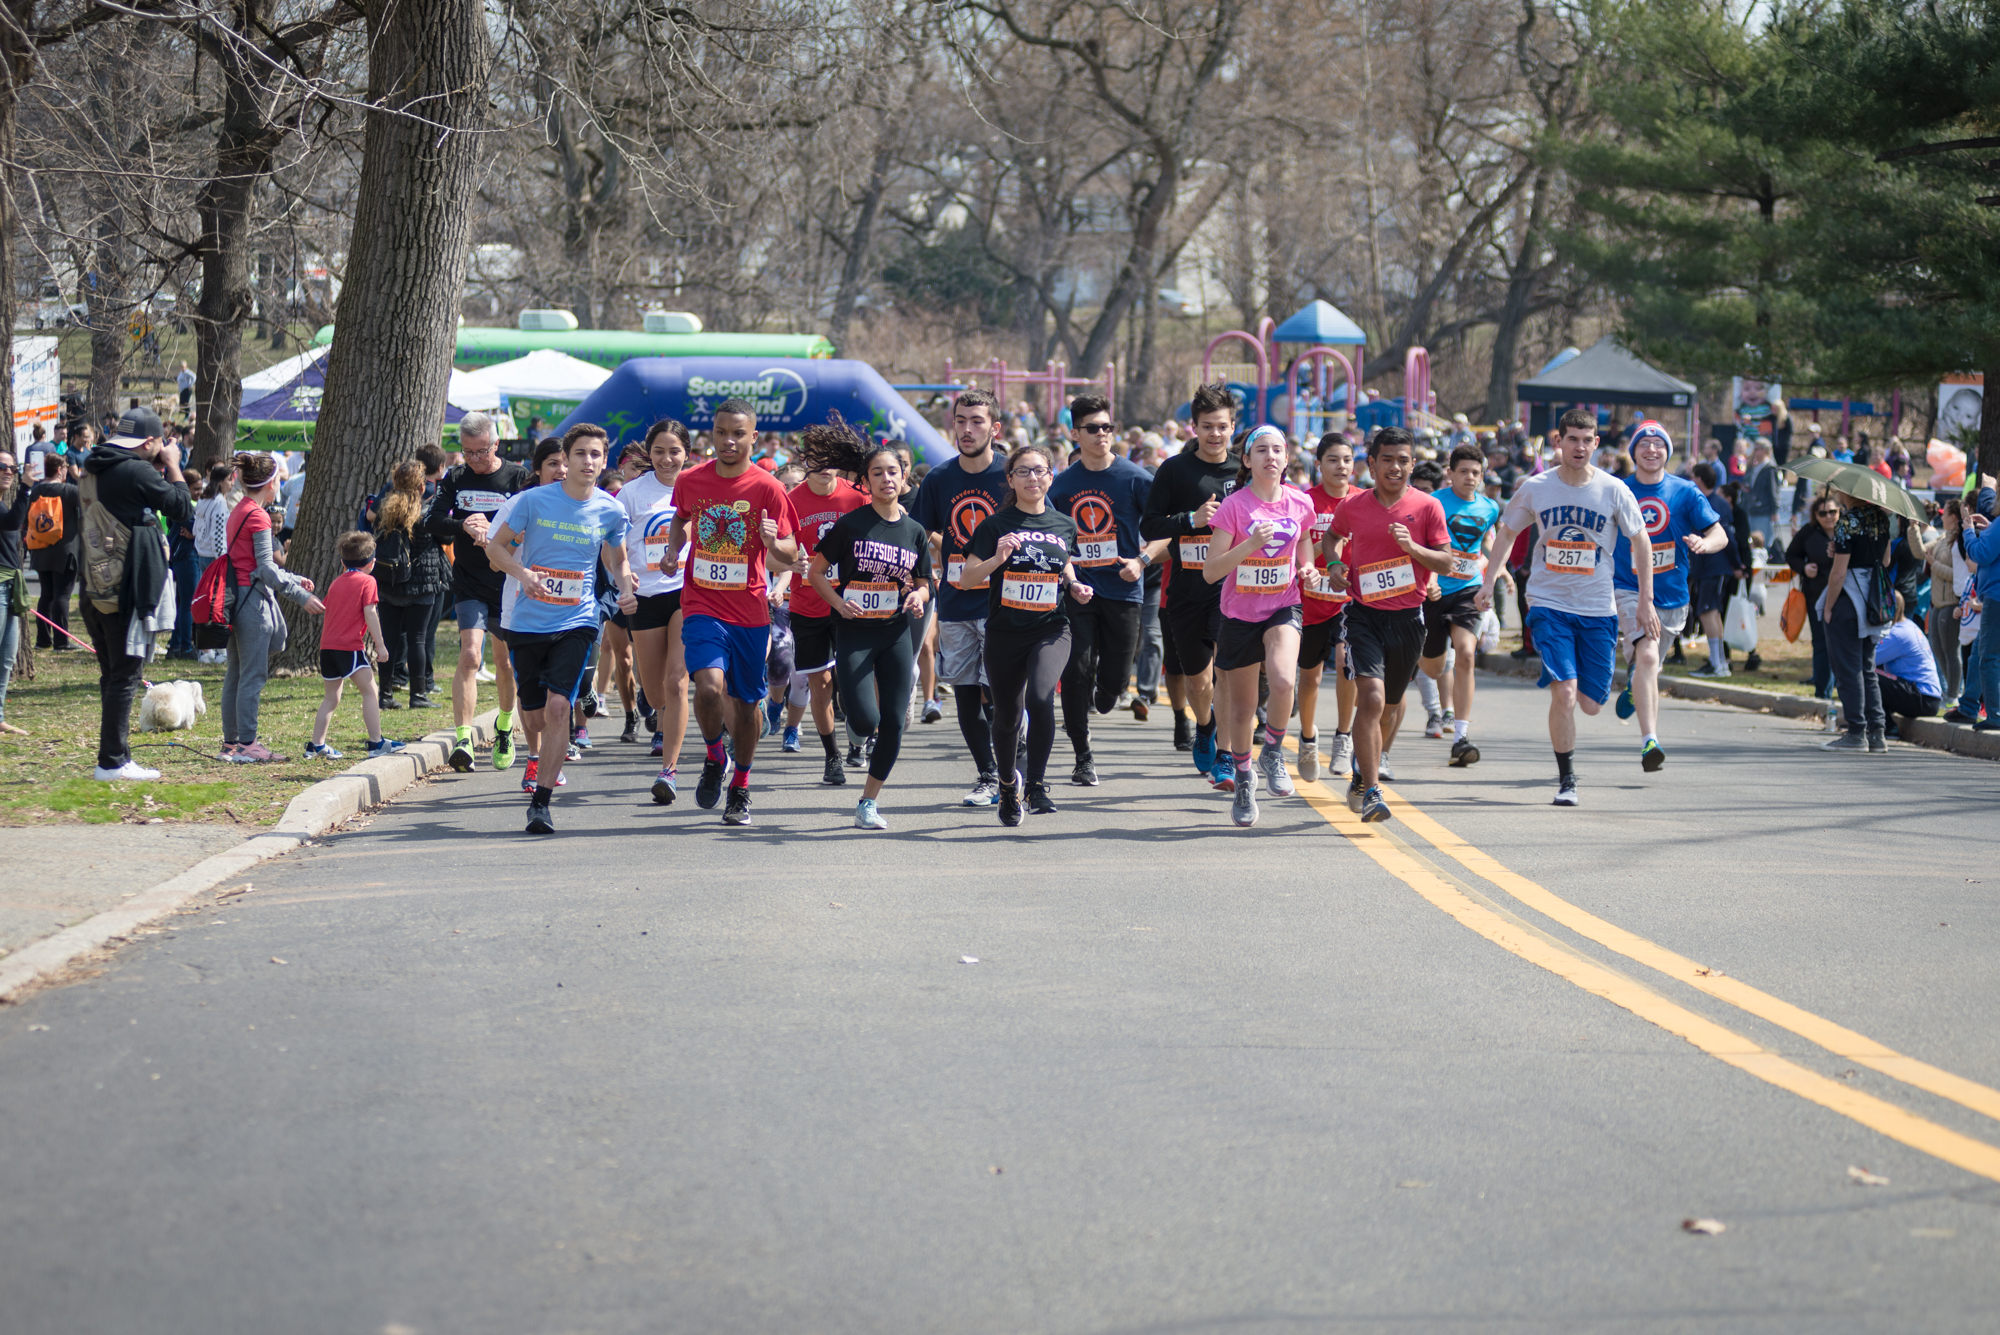 2019-03-30 Haydens Heart 5k - Riverside County Park - North Arlington NJ-101.jpg